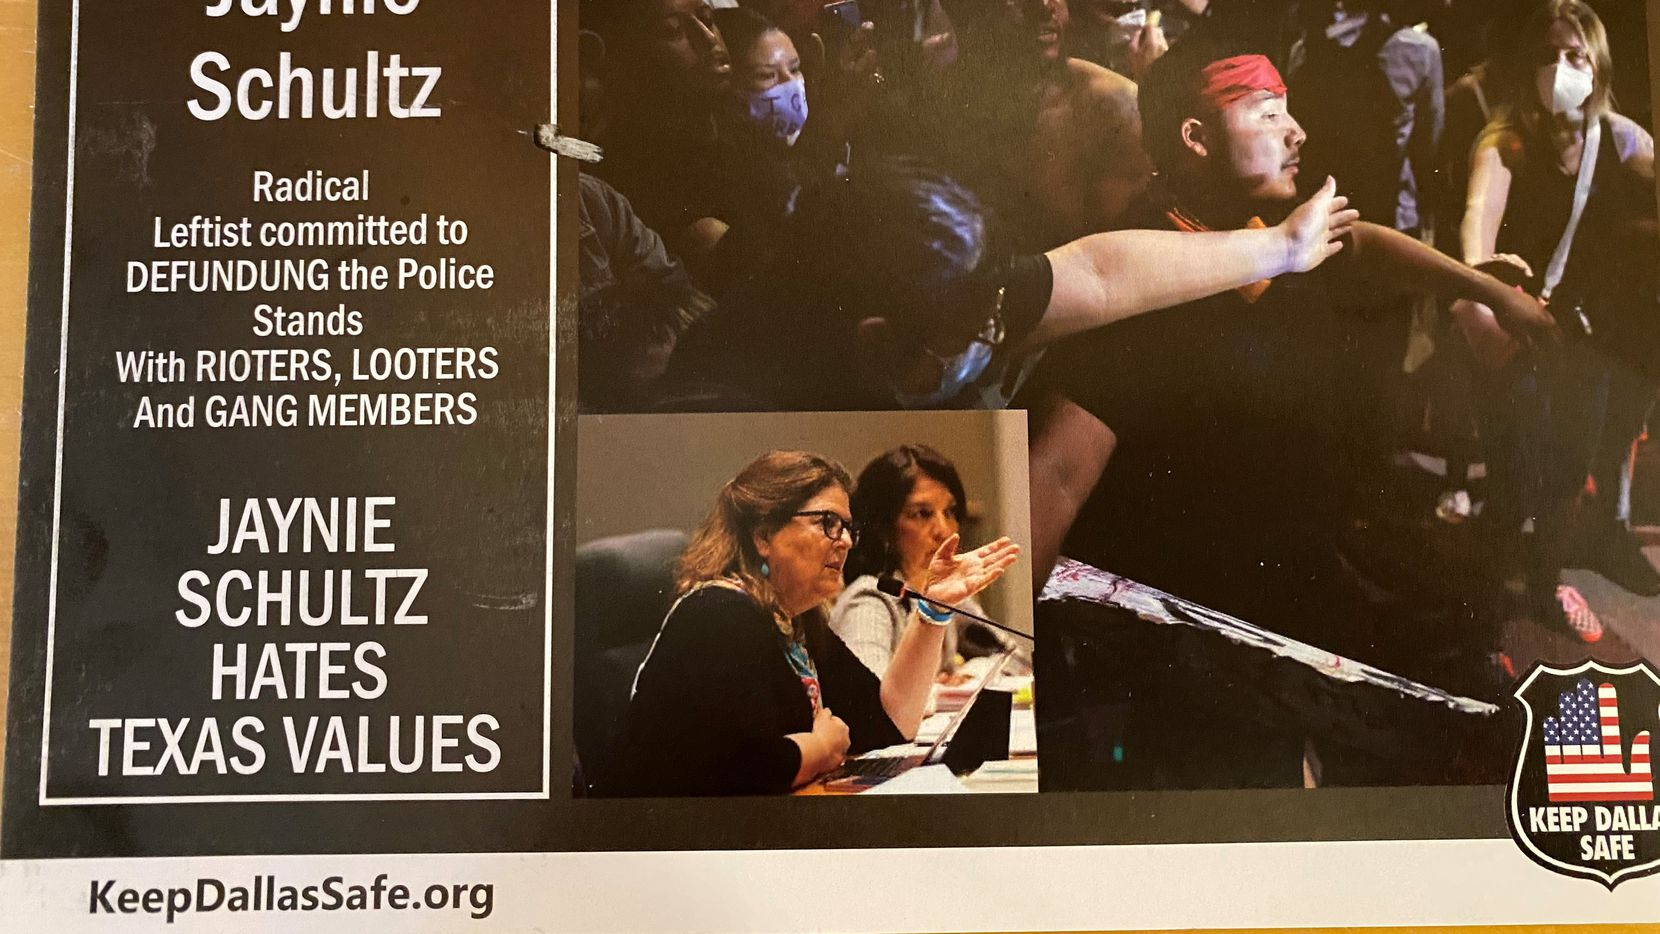 A mailer from the group Keep Dallas Safe attacks District 11 City Council candidate Jaynie Schultz.